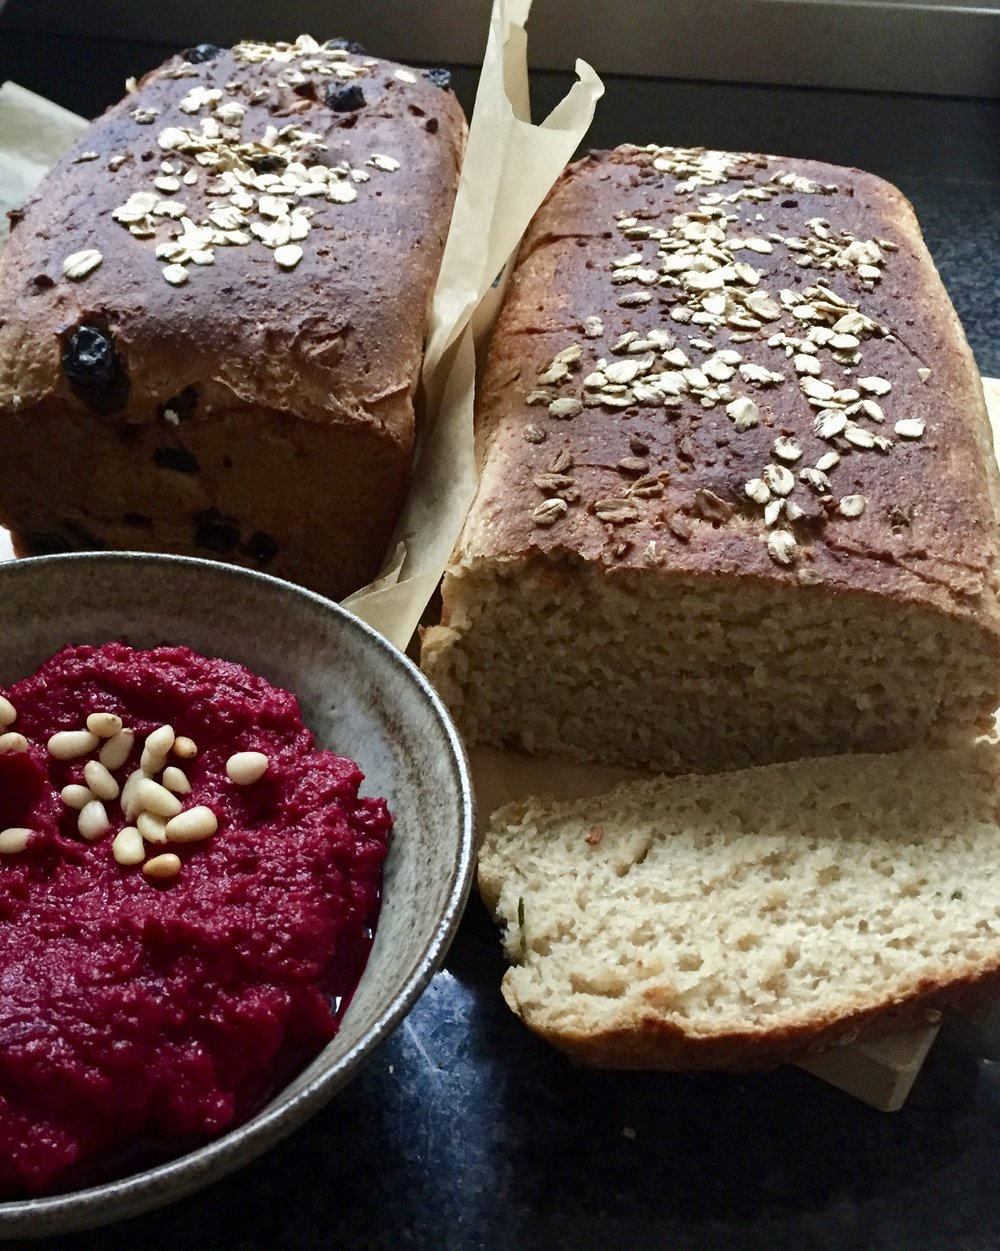 Rosemary oatmeal whole wheat bread with beet spread